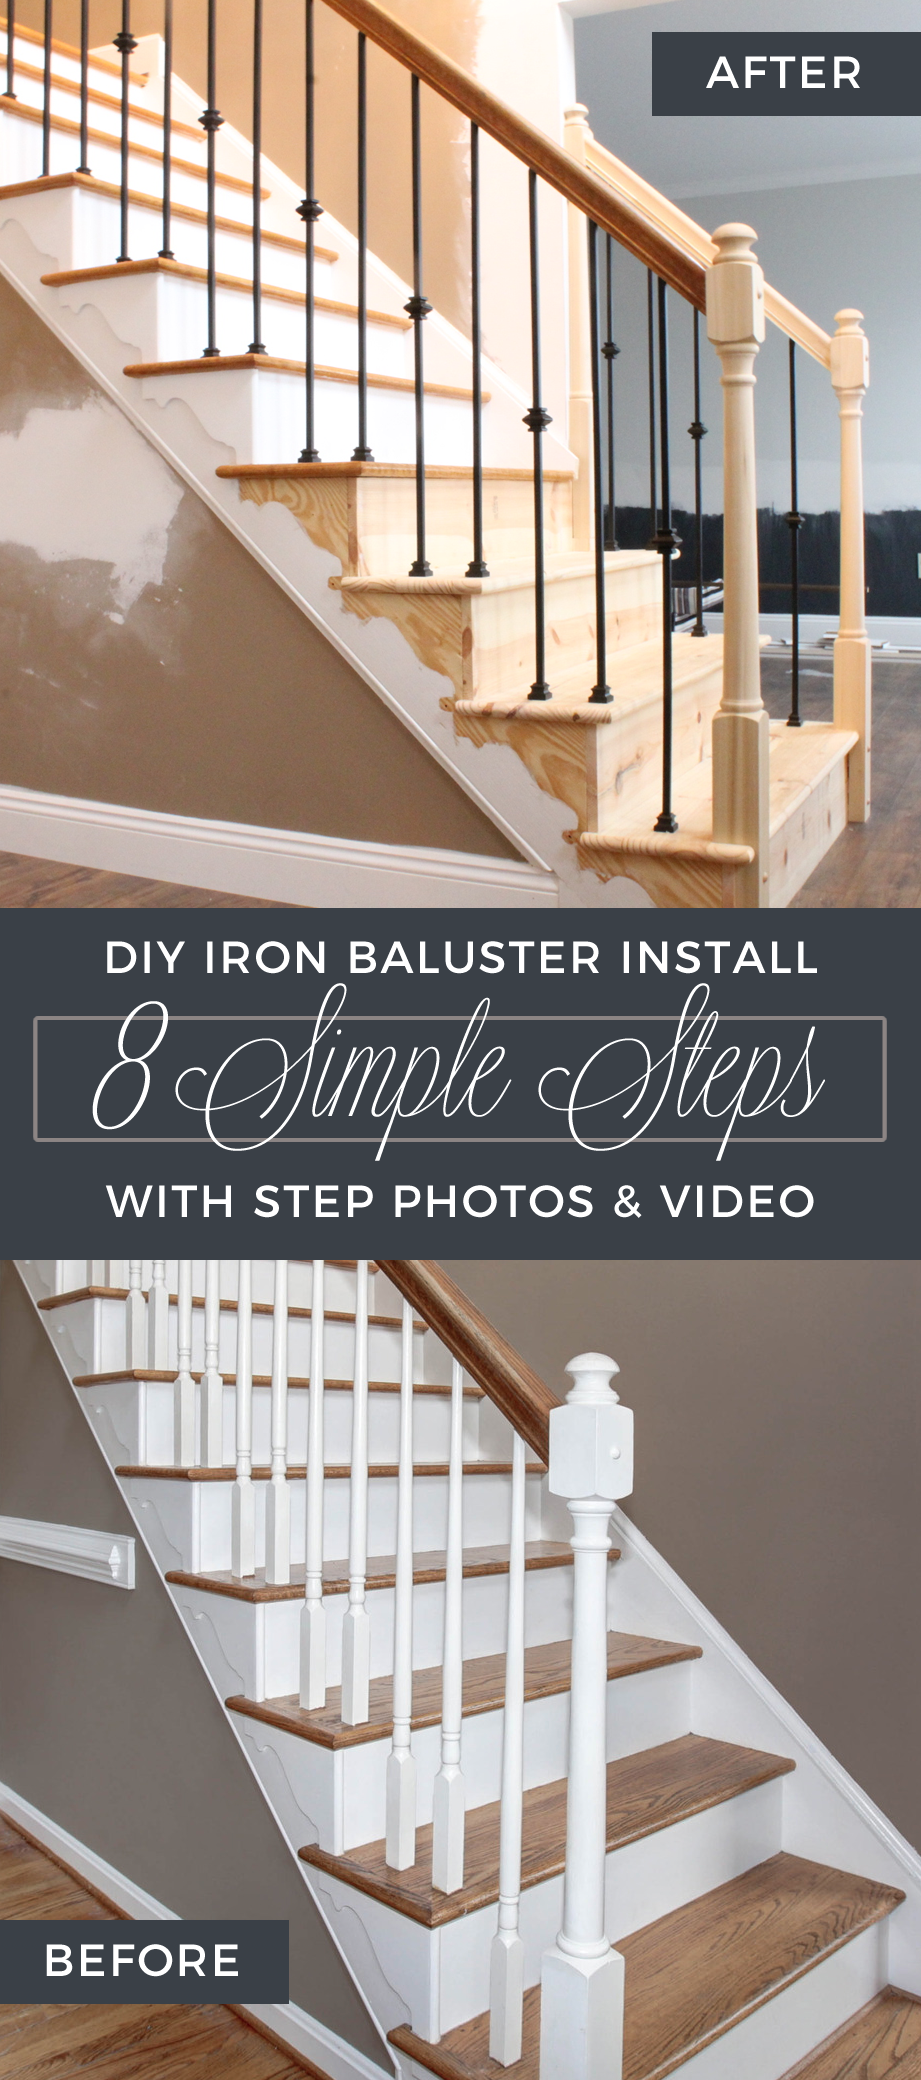 Diy Wrought Iron Baluster Stair Spindle Install With Step Photos   Installing Wrought Iron Railings On Stairs   Railing Kits   Concrete Steps   Iron Balusters   Outdoor Stair   Stair Spindles